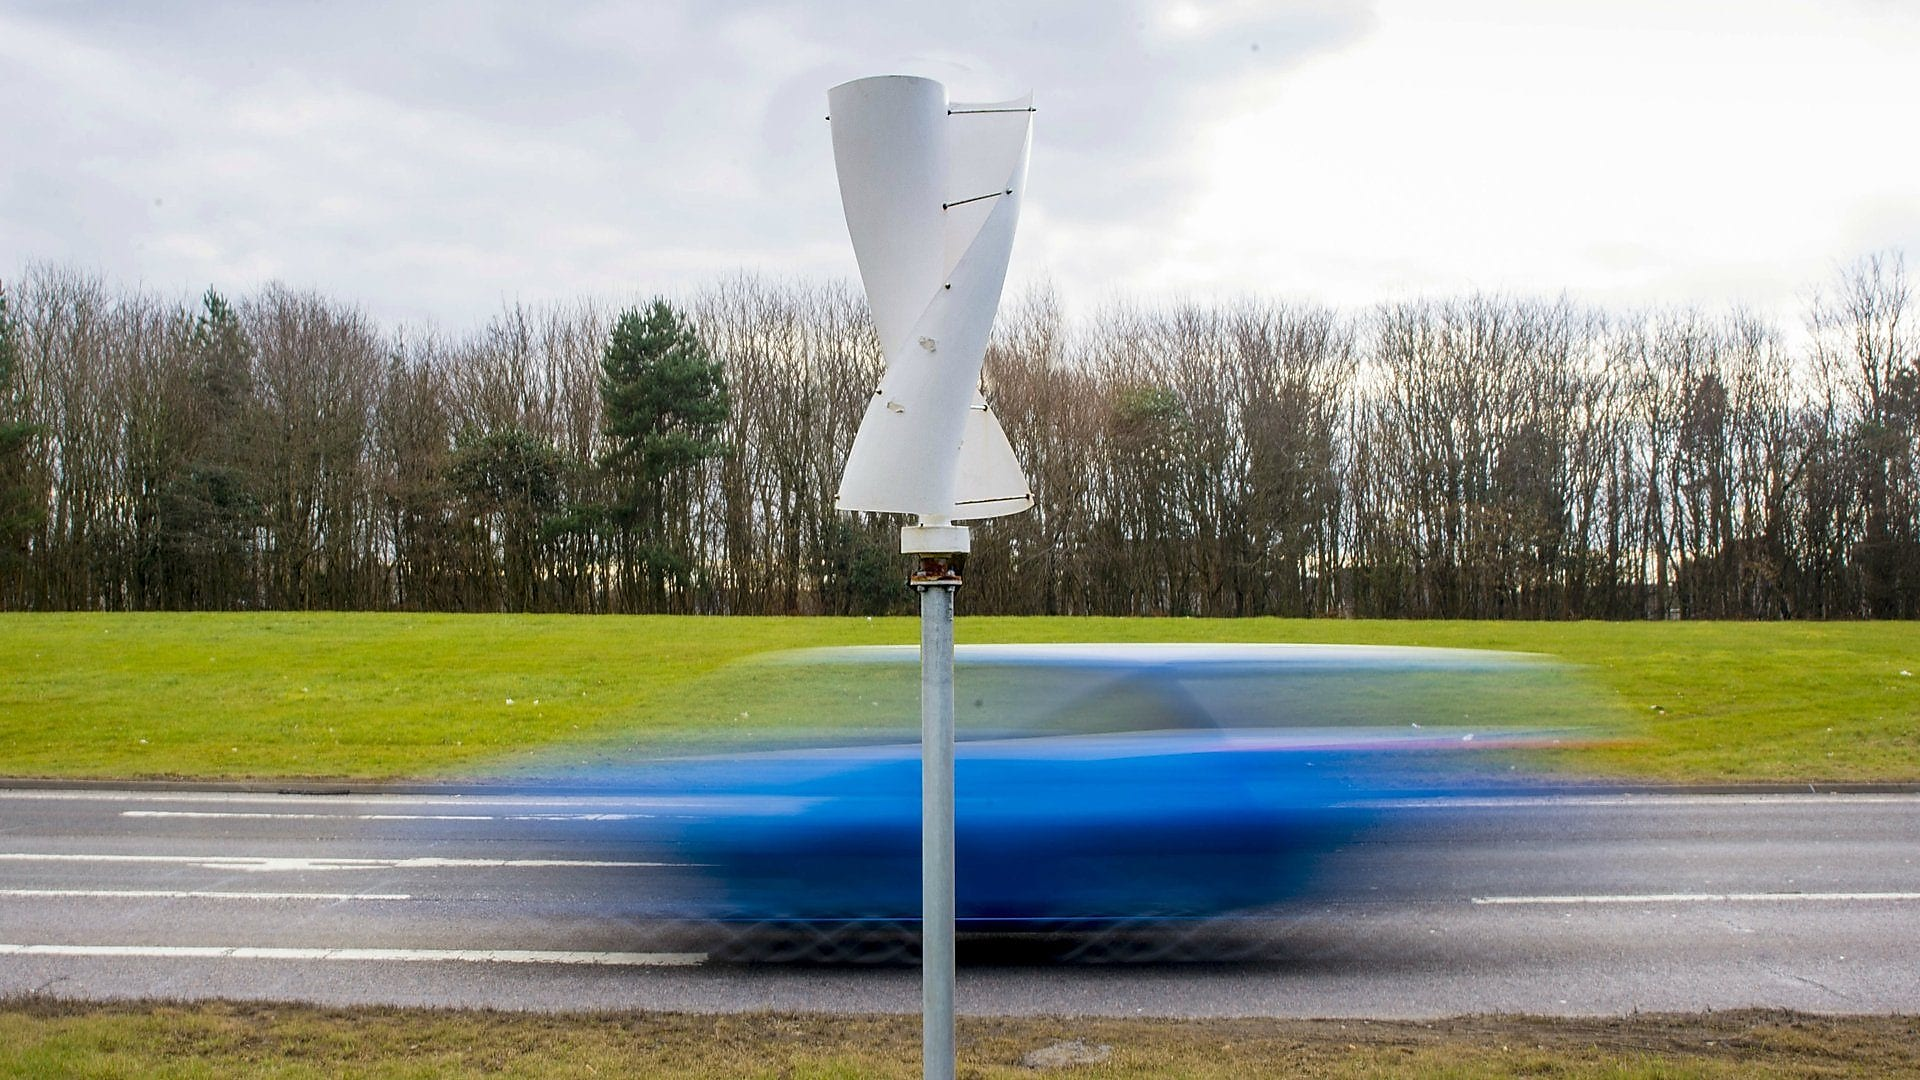 Winds of change: turbine turns traffic into energy | Shell Global